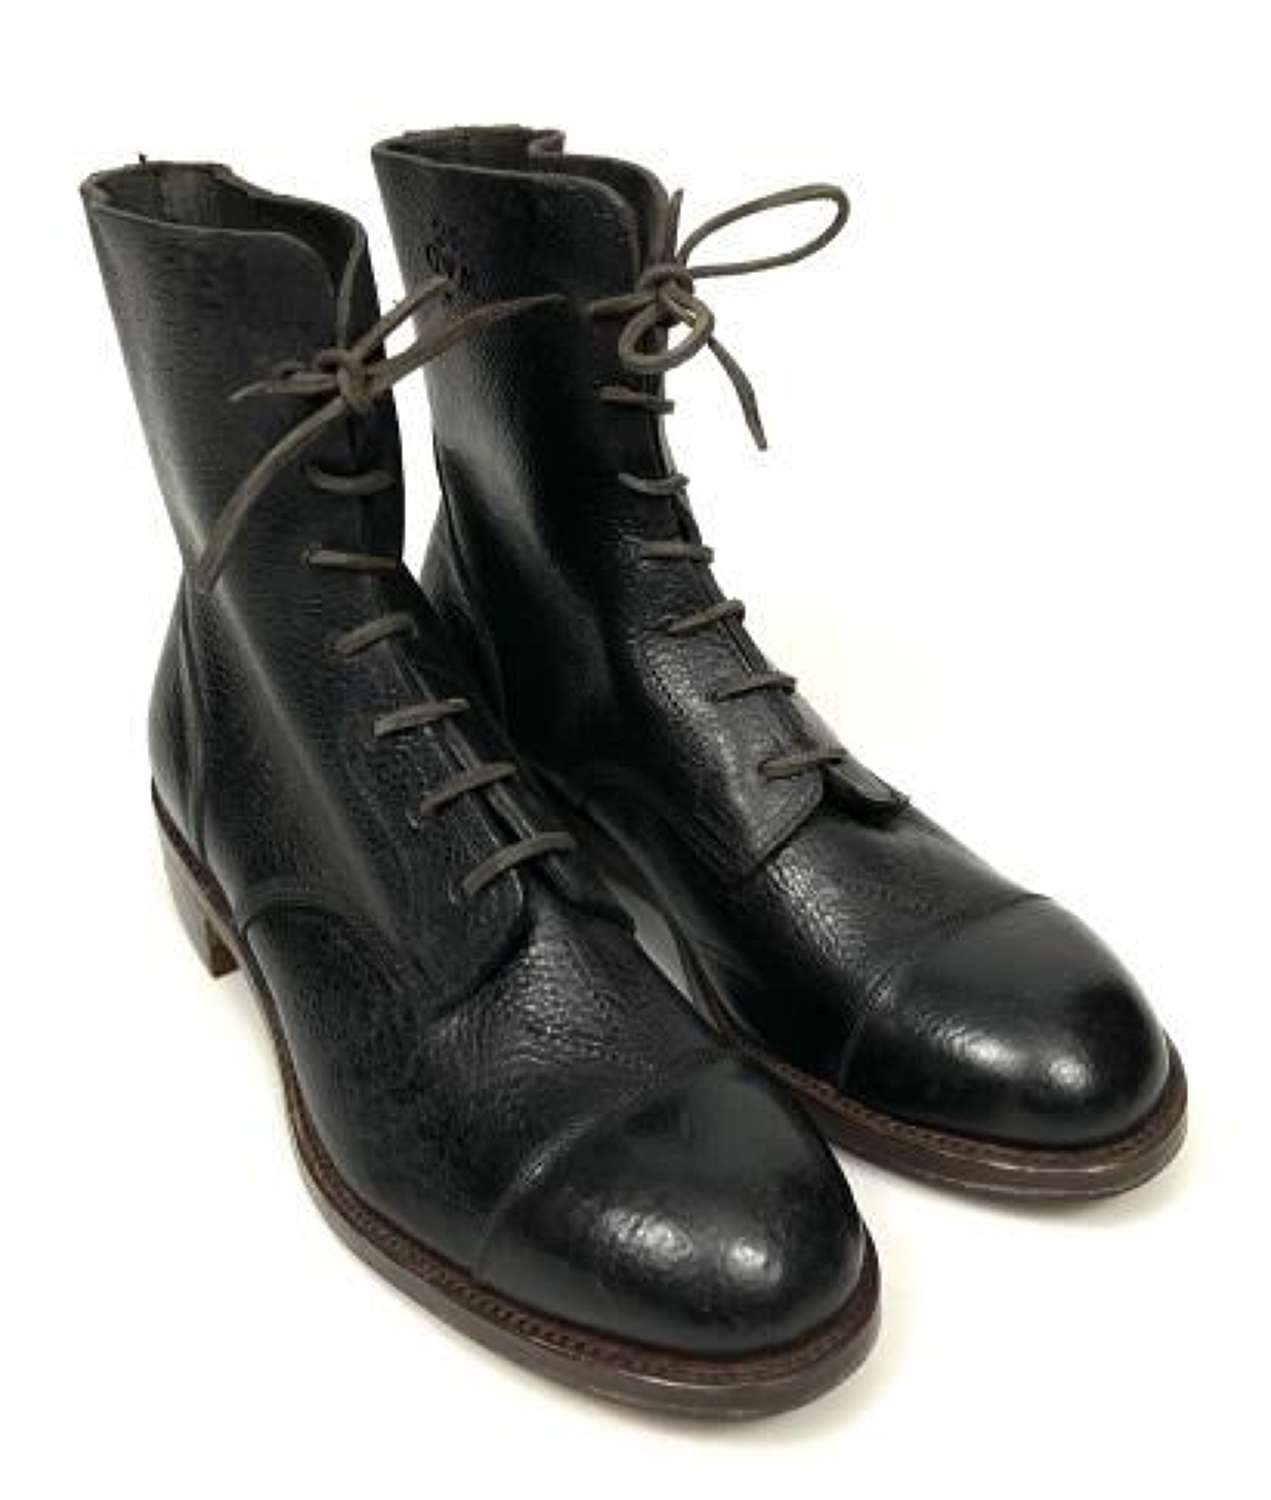 Original 1952 Dated Royal Ordnance Factory Workers Black Leather Boots